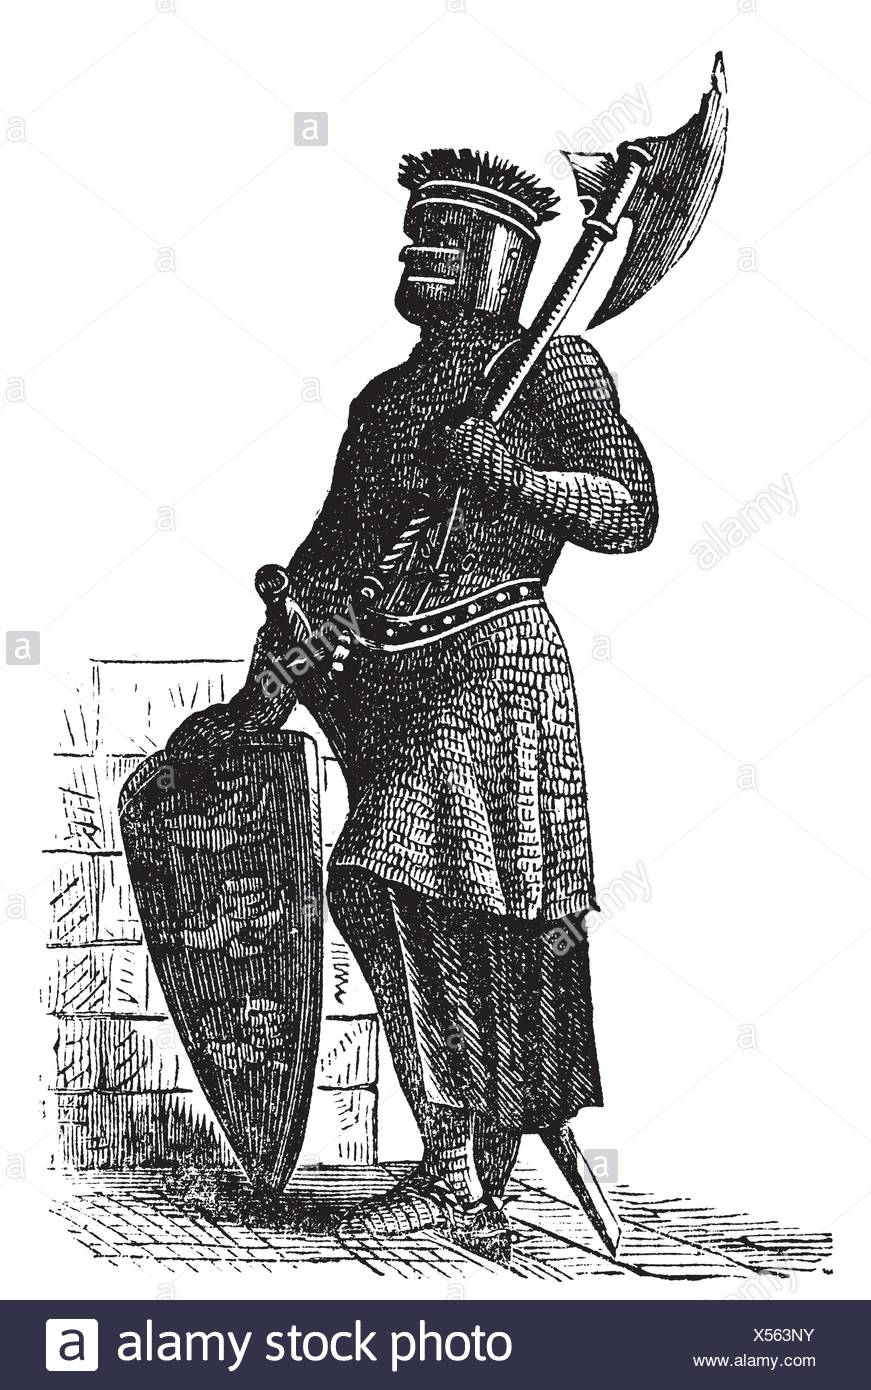 Armor and weapons during the first Crusades era, old engraving  Vector, engraved illustration of Crusade knight, in mail armor, with hauberk, shield - Stock Image